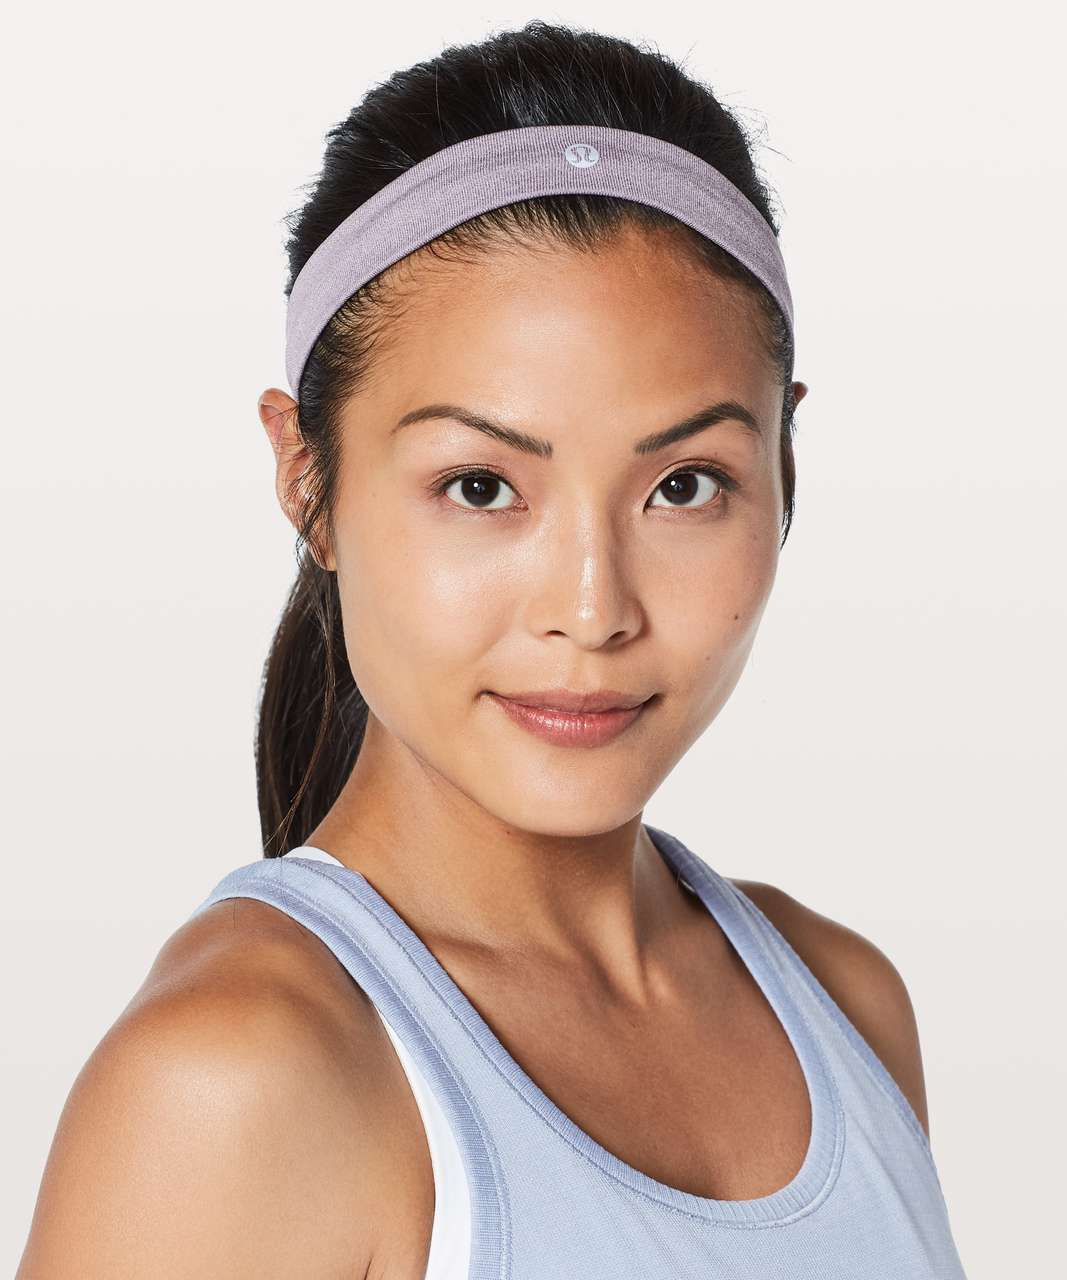 Lululemon Cardio Cross Trainer Headband - Smoked Mulberry / White